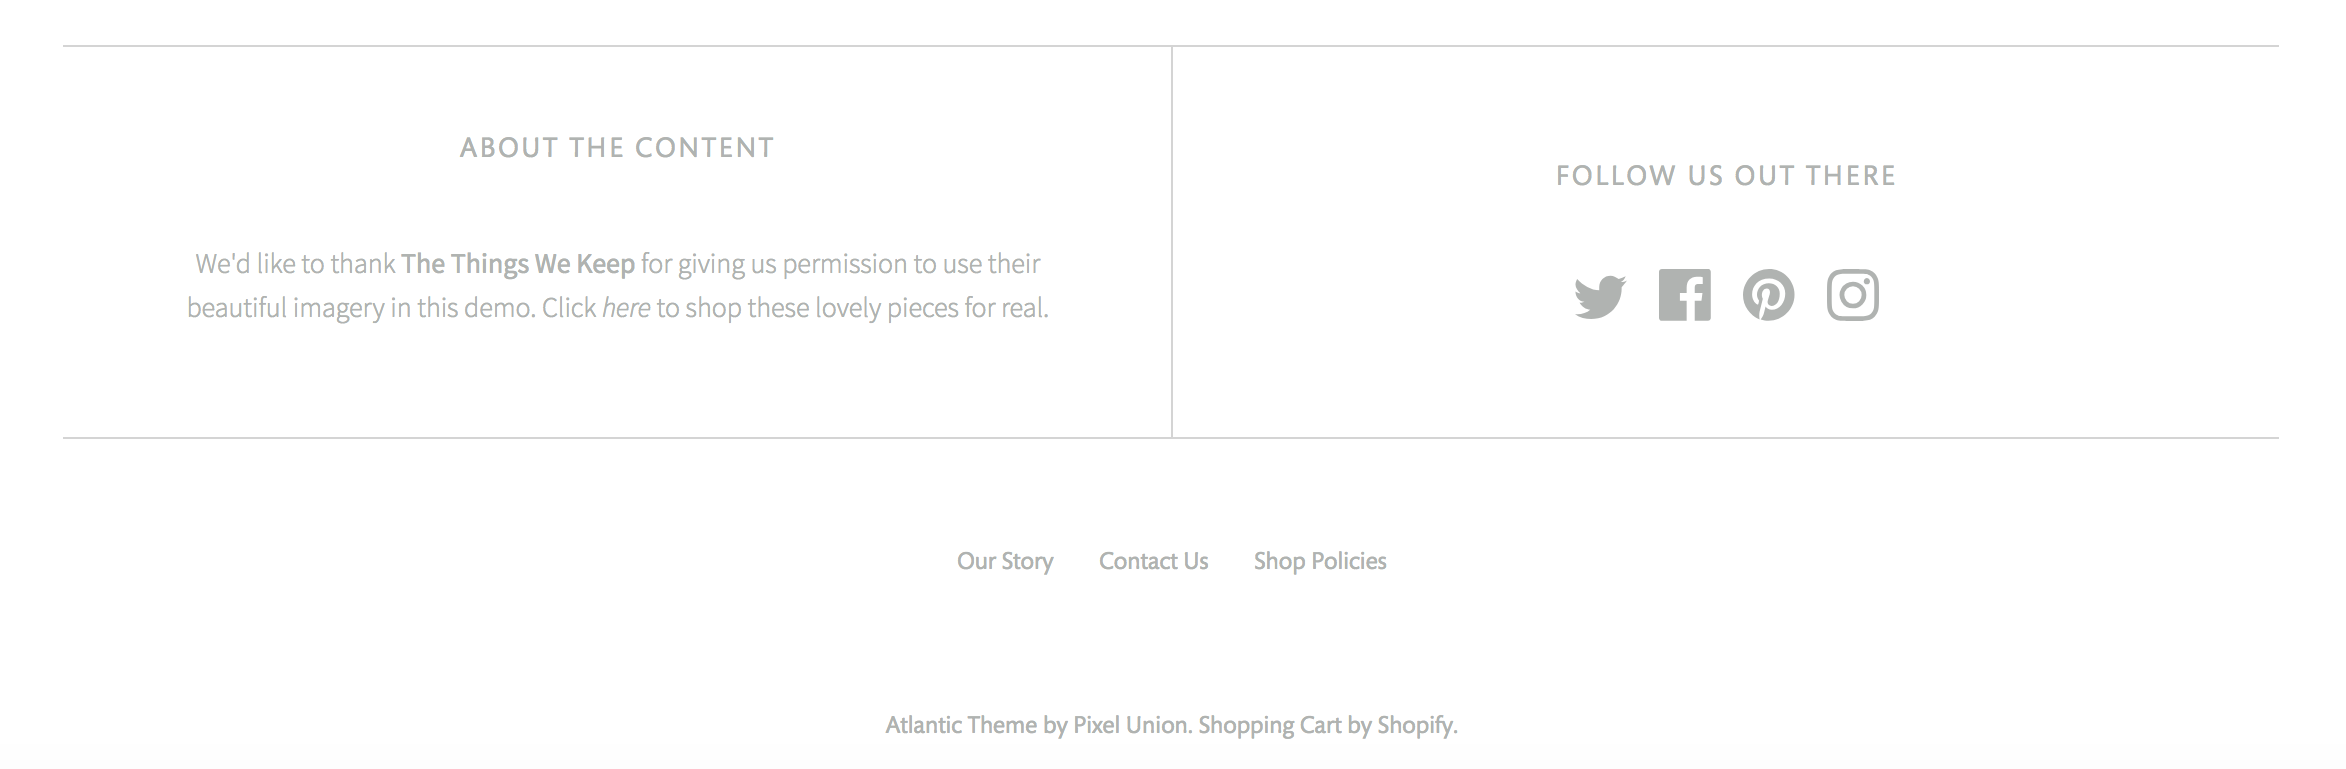 Atlantic Chic demo's footer with social links and menu